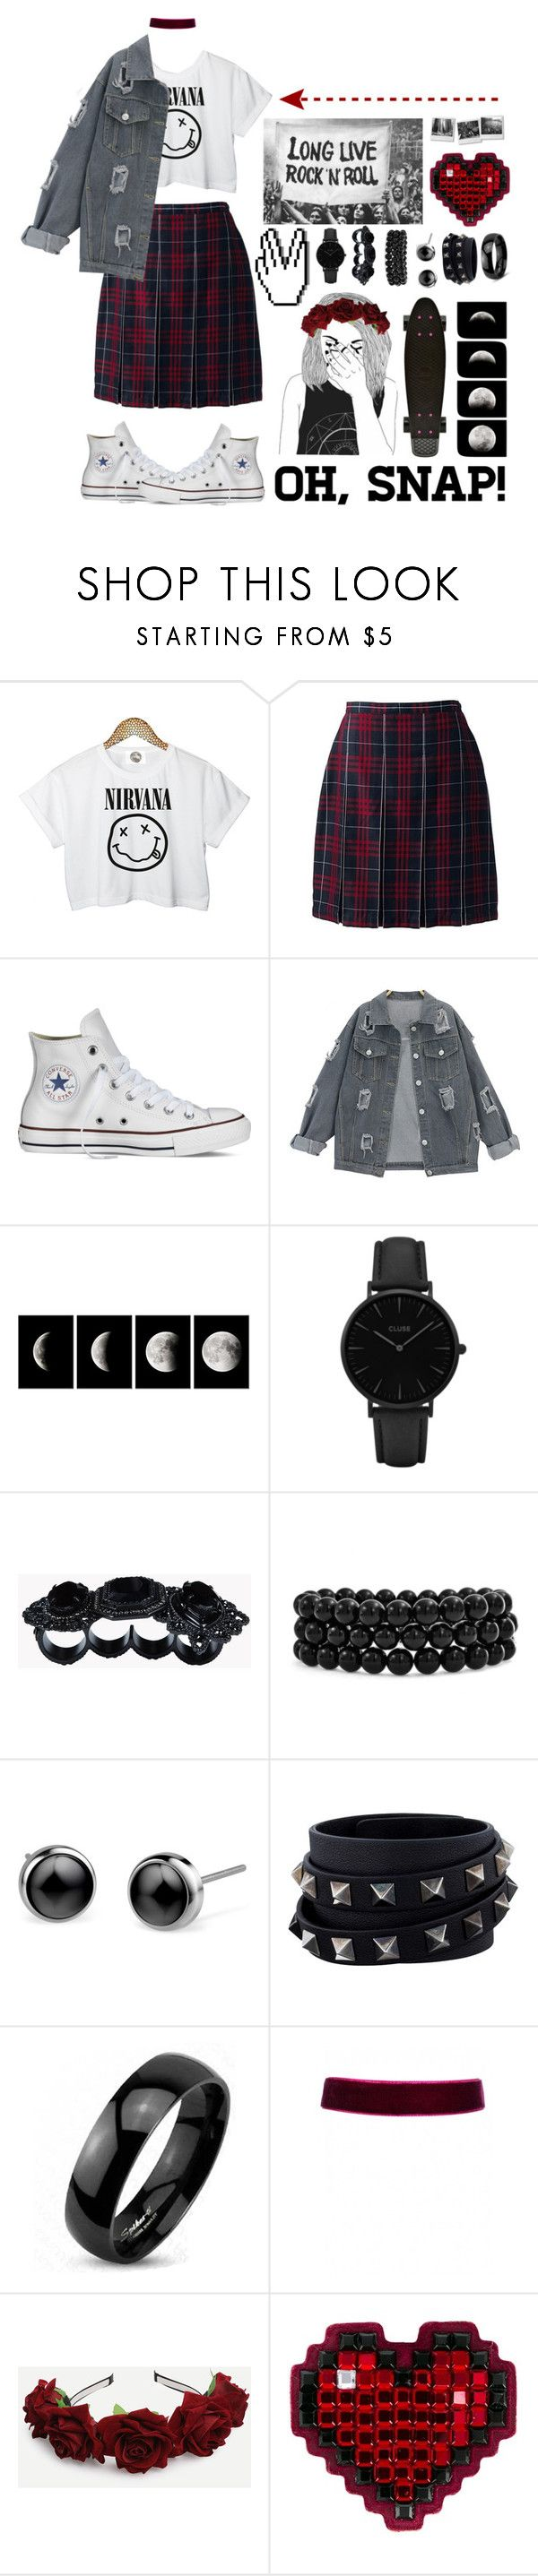 """Long live rock n' roll"" by galaxygirl12427 ❤ liked on Polyvore featuring CC, Lands' End, Converse, WALL, CLUSE, Dsquared2, Bling Jewelry, Valentino, West Coast Jewelry and Anya Hindmarch"